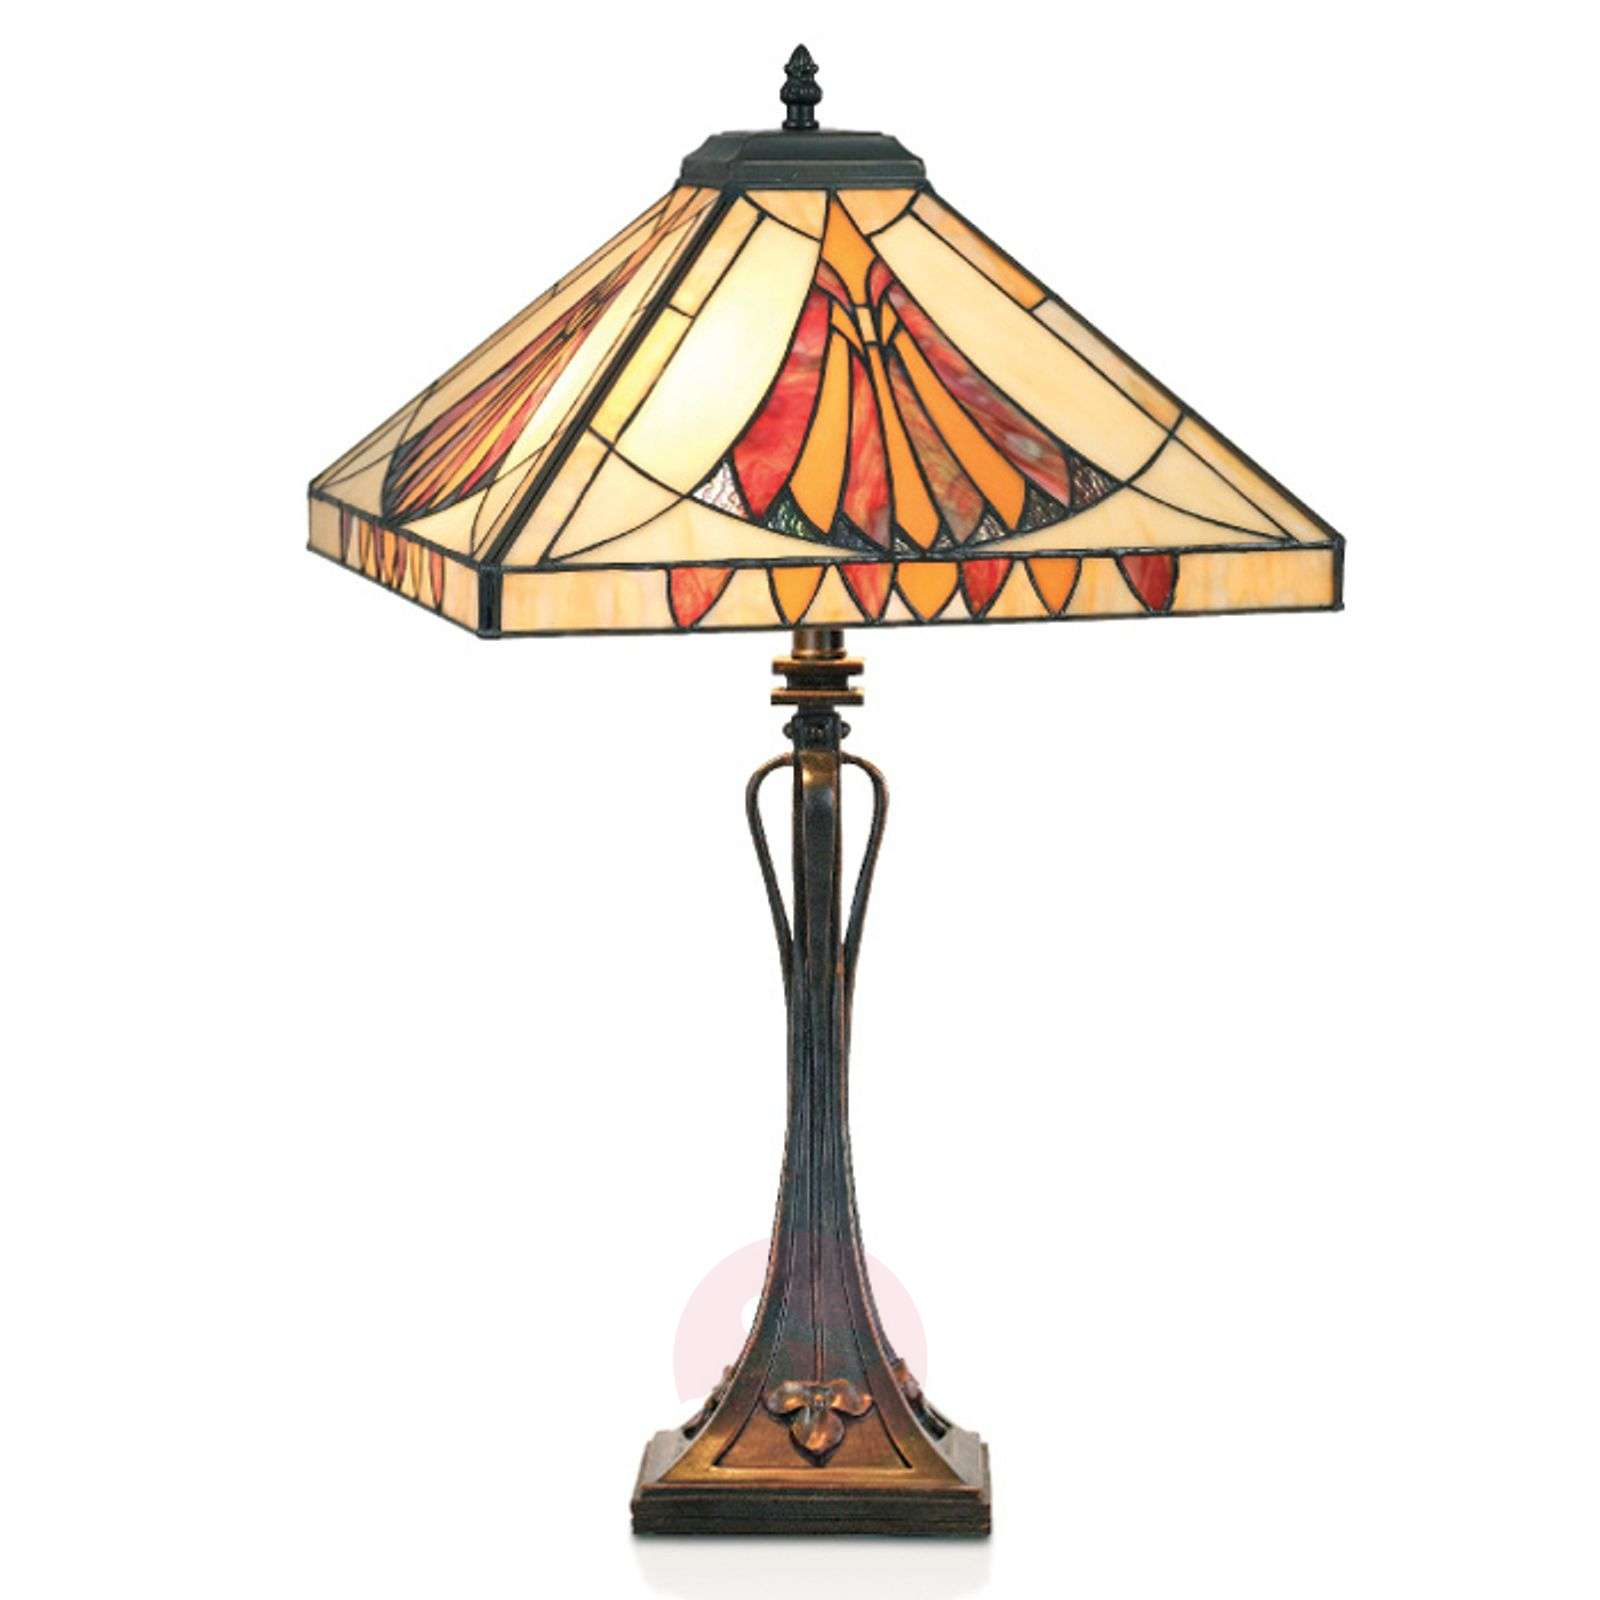 Graceful table lamp AMALIA in the Tiffany style-1032191-01